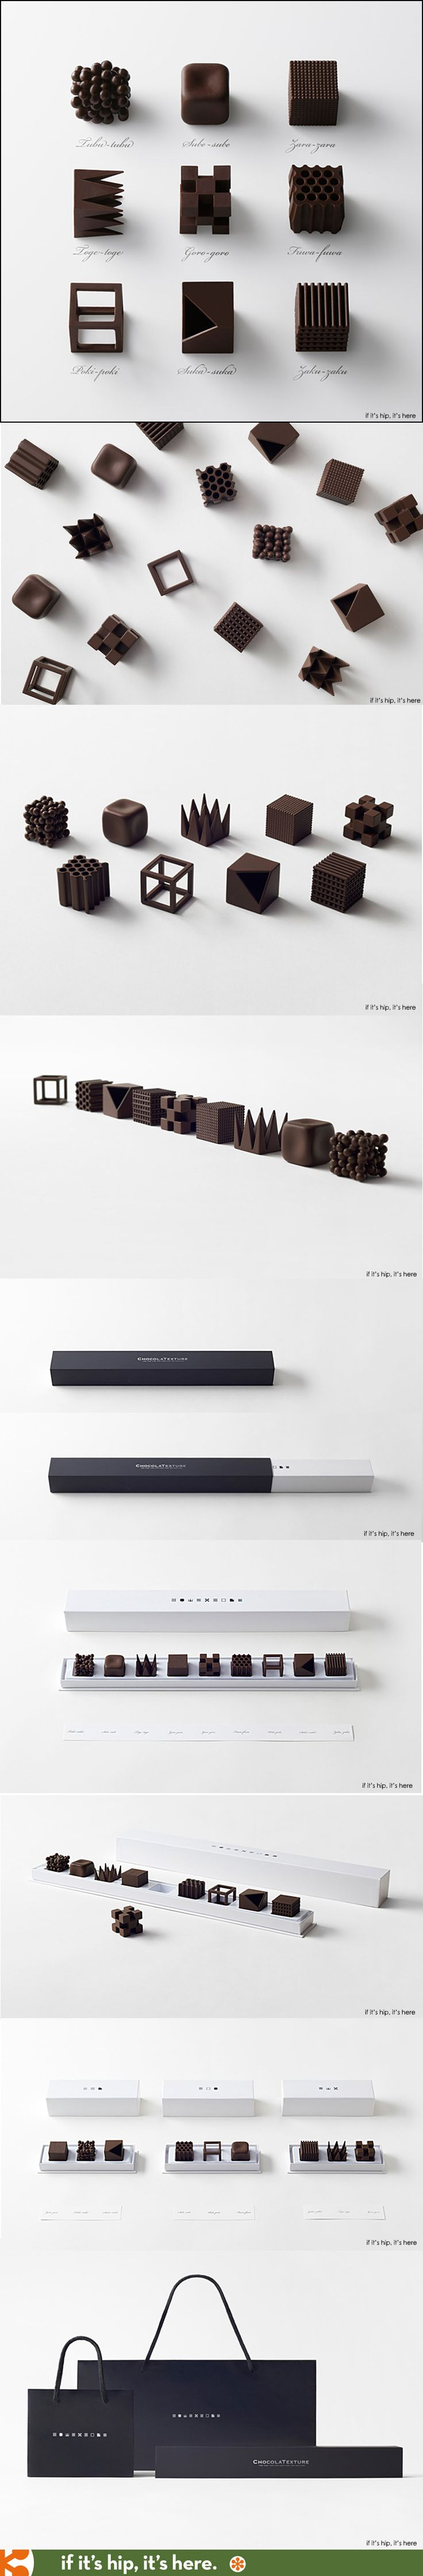 I don't know what's prettier, the chocolates or the packaging. ChocolaTexture by Nendo.